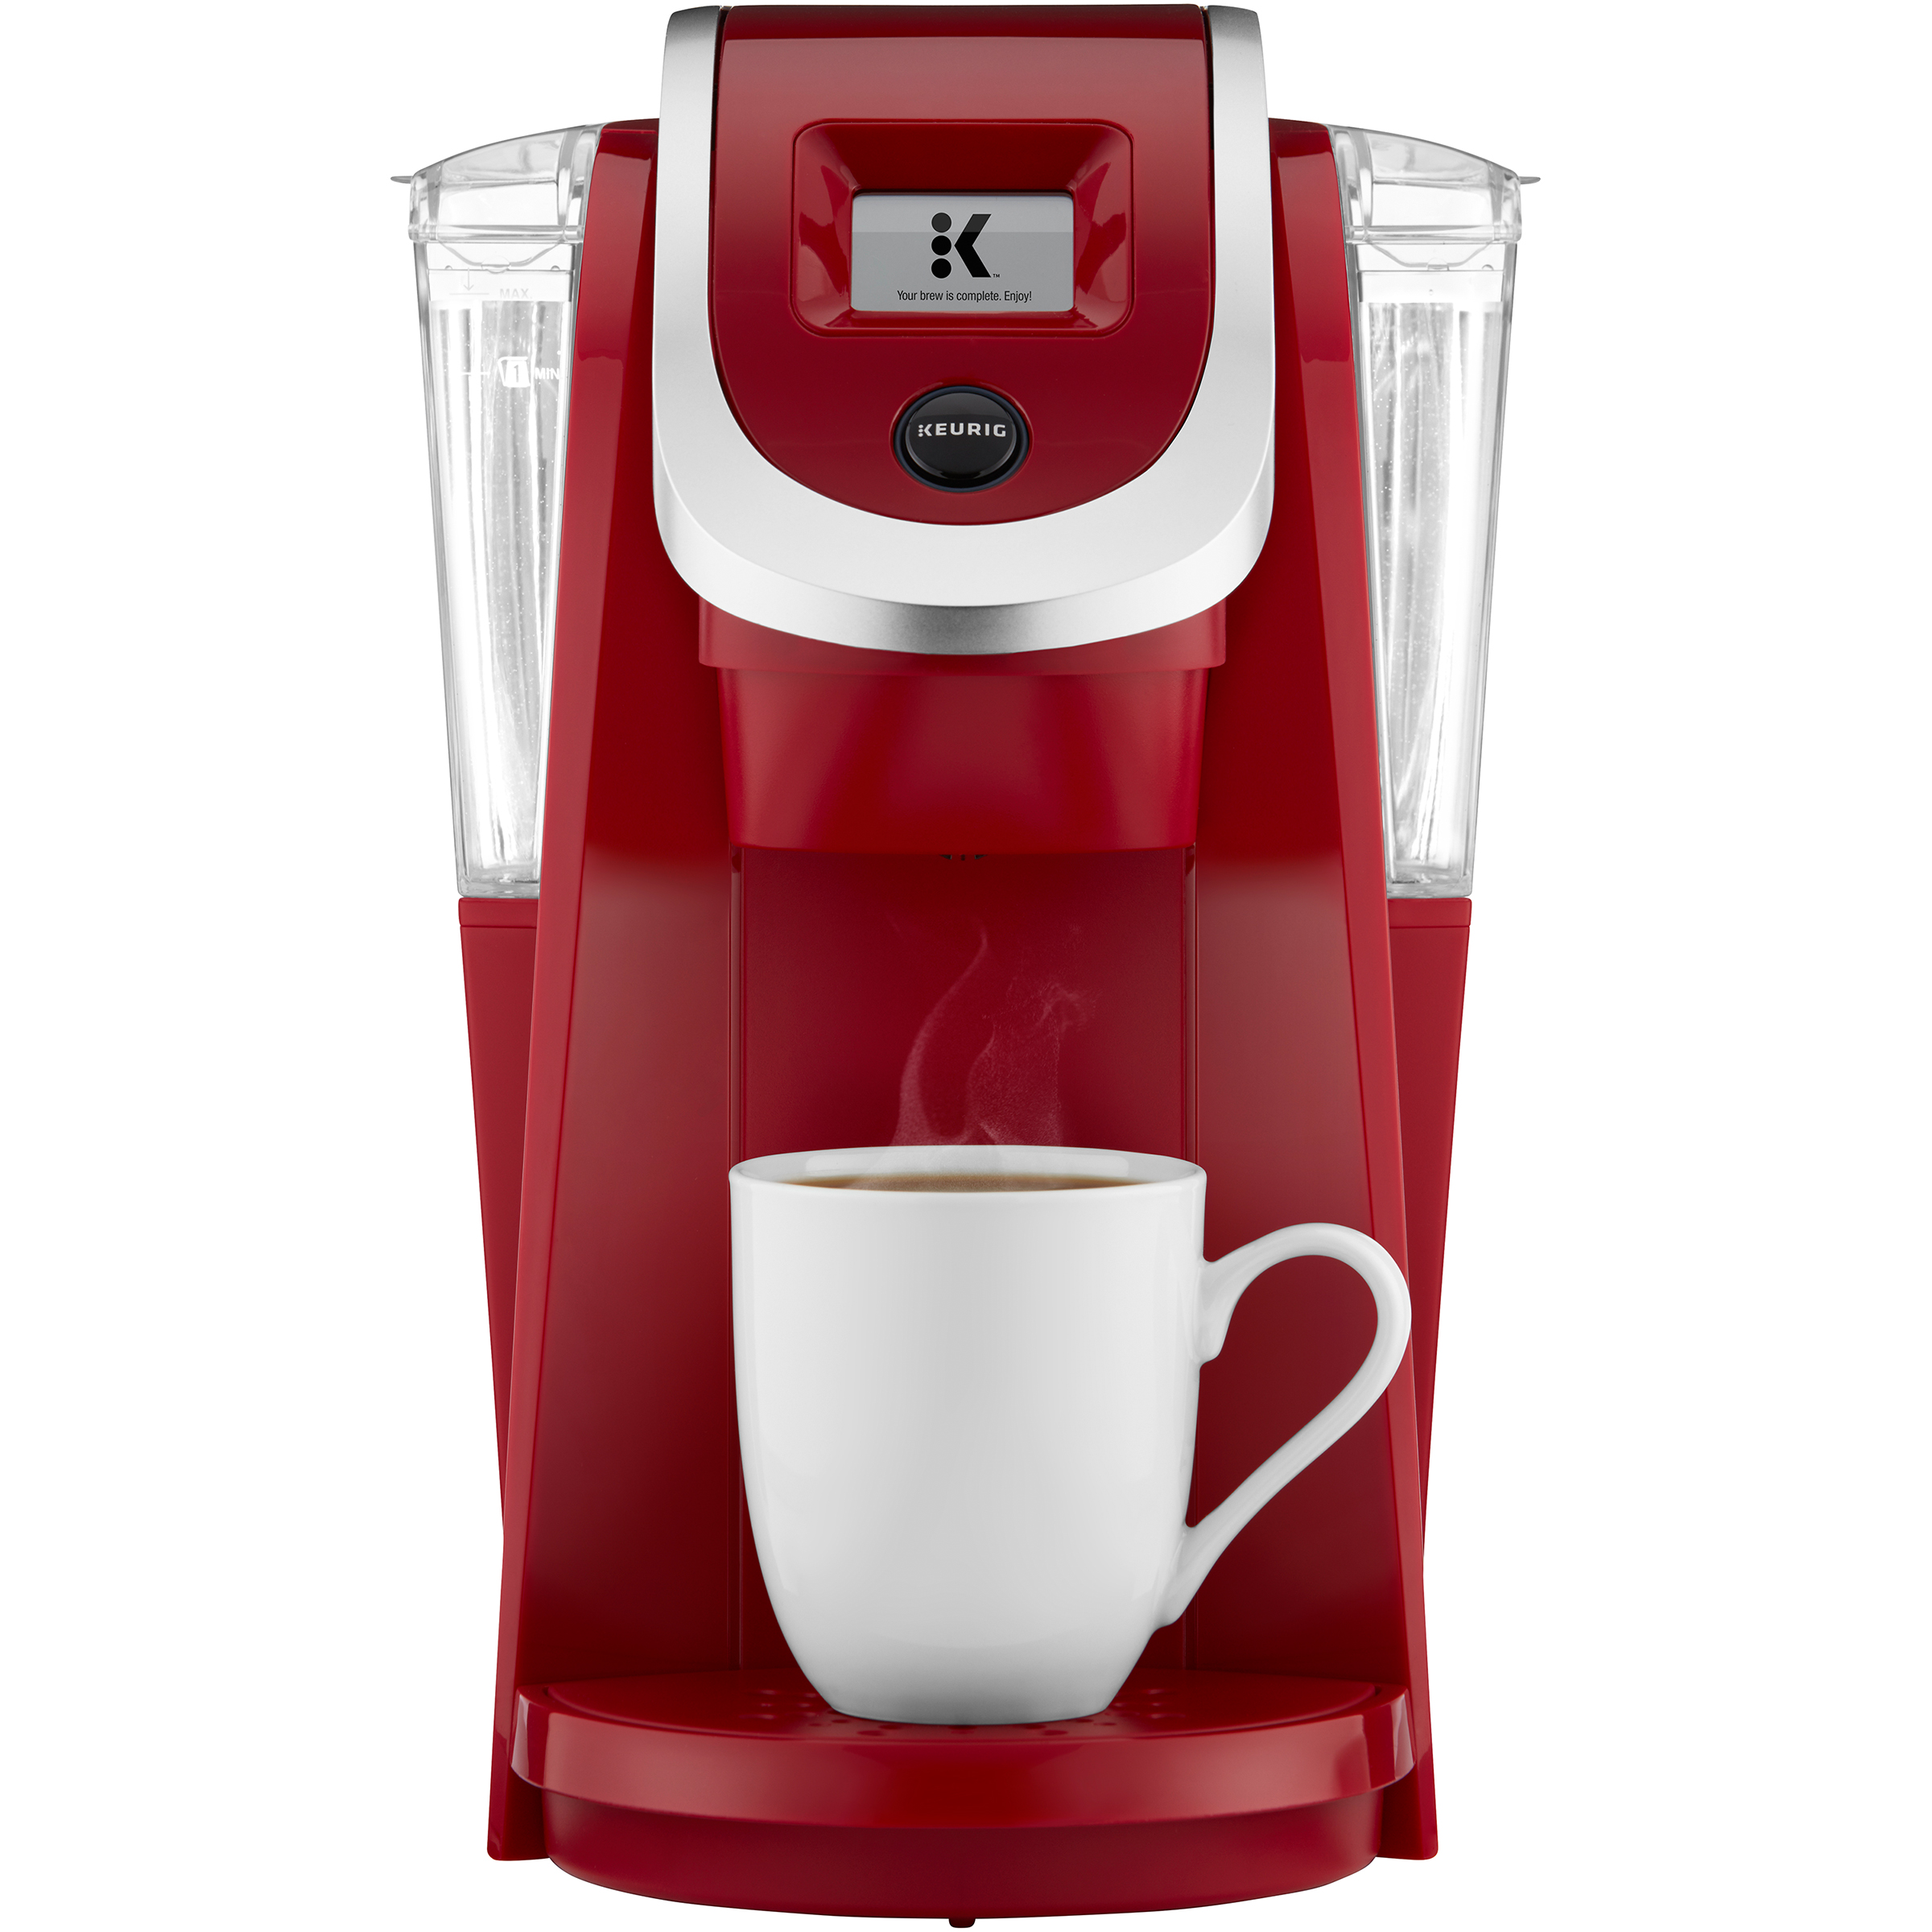 Red Keurig Coffee Maker Pod Brew Strength Taste Control Kitchen Small New eBay